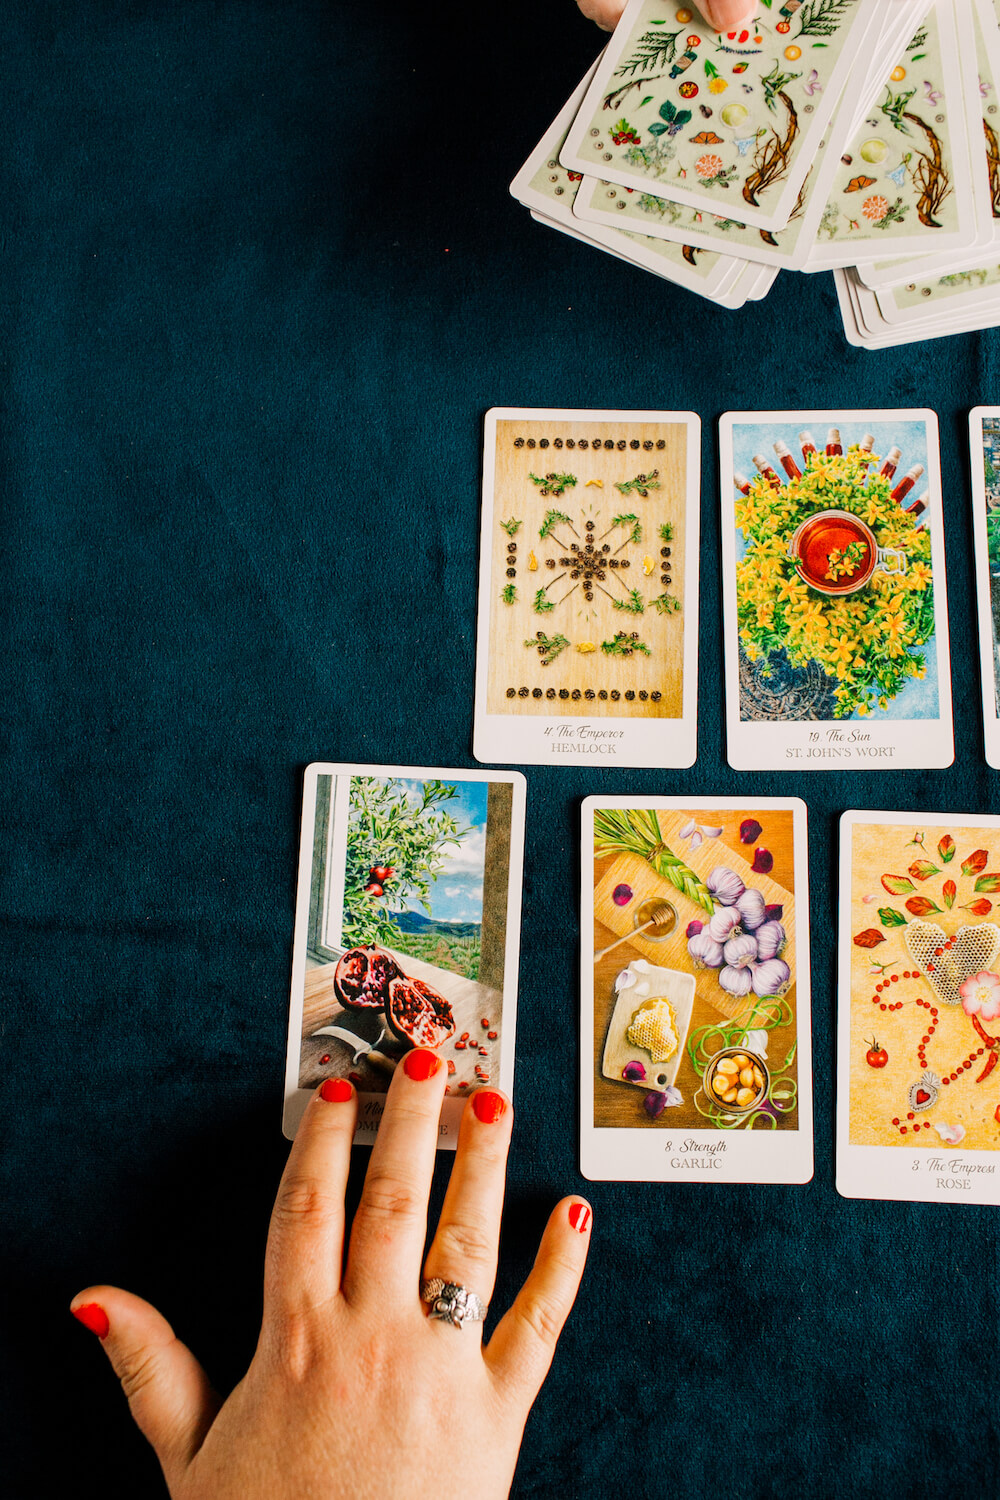 How to Use The Deck・The Herbcrafter's Tarot